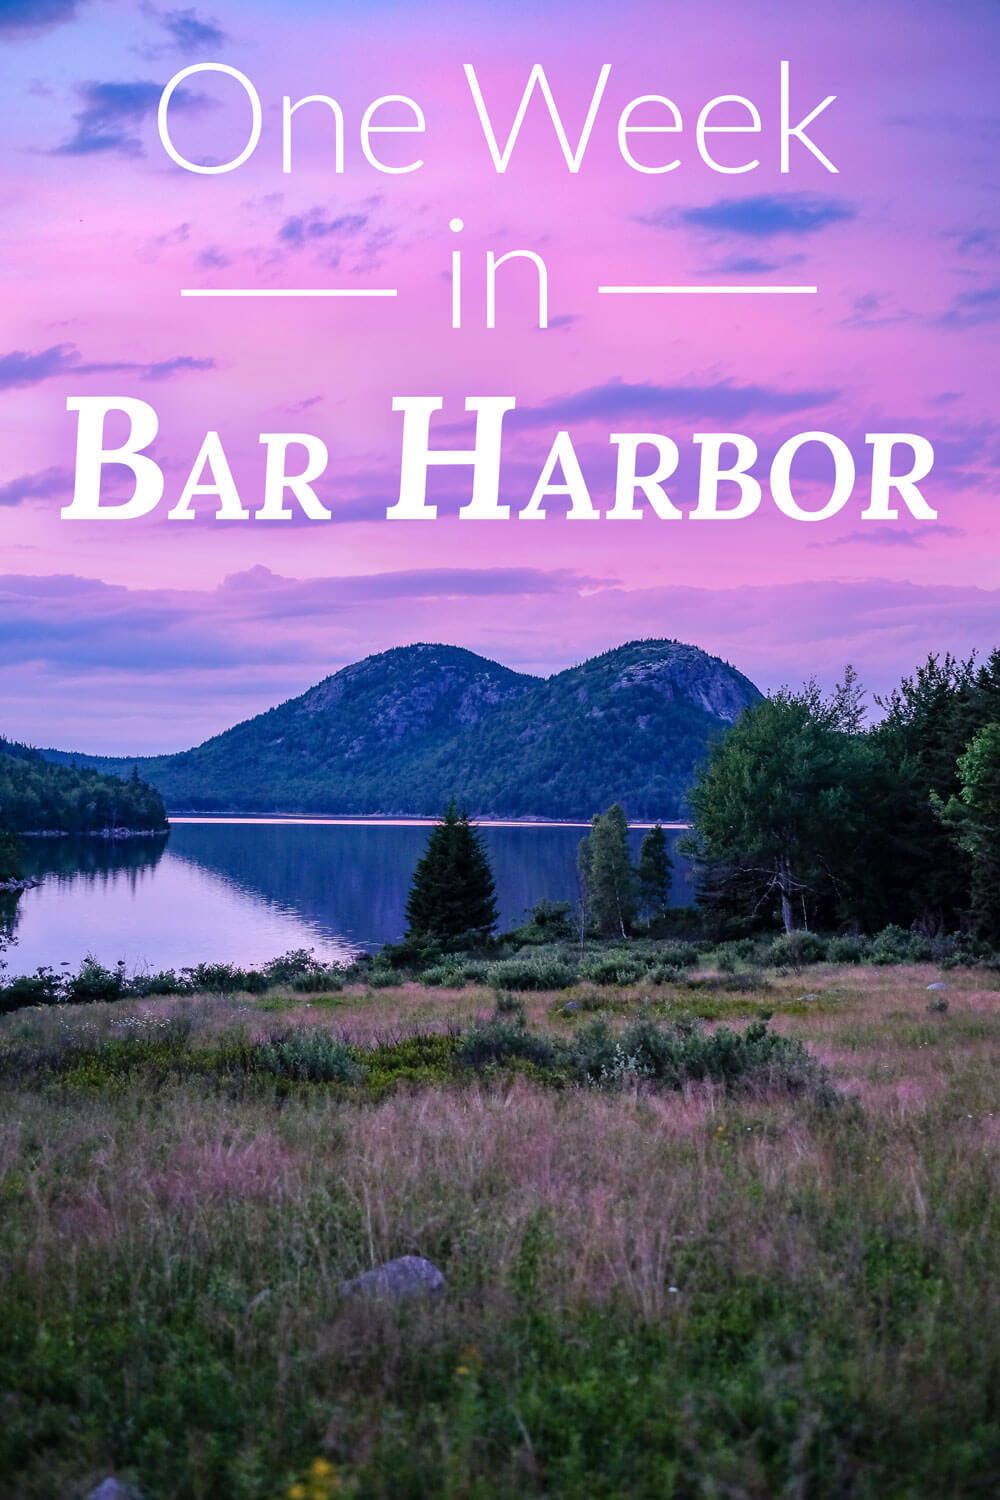 Heading to Bar Harbor, Maine or Acadia National Park? This itinerary will give you everything you need to know to make your visit memorable. Includes highlights like whale-watching, rock climbing, scenic drives, Cadillac Mountain, hiking, and more.